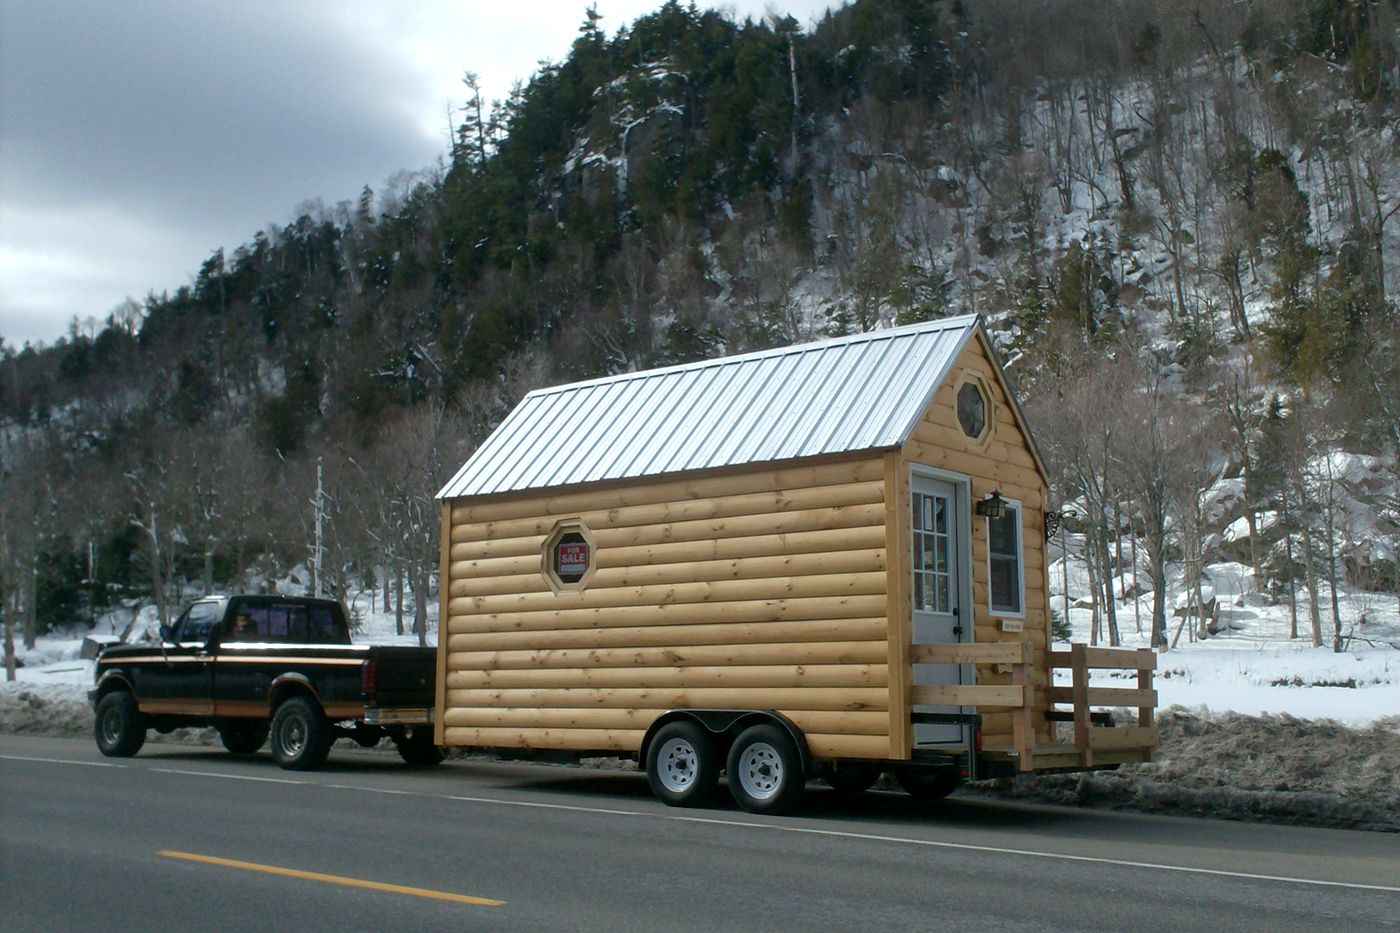 I Spent 3 Days In A Tiny House With My Mum To See What